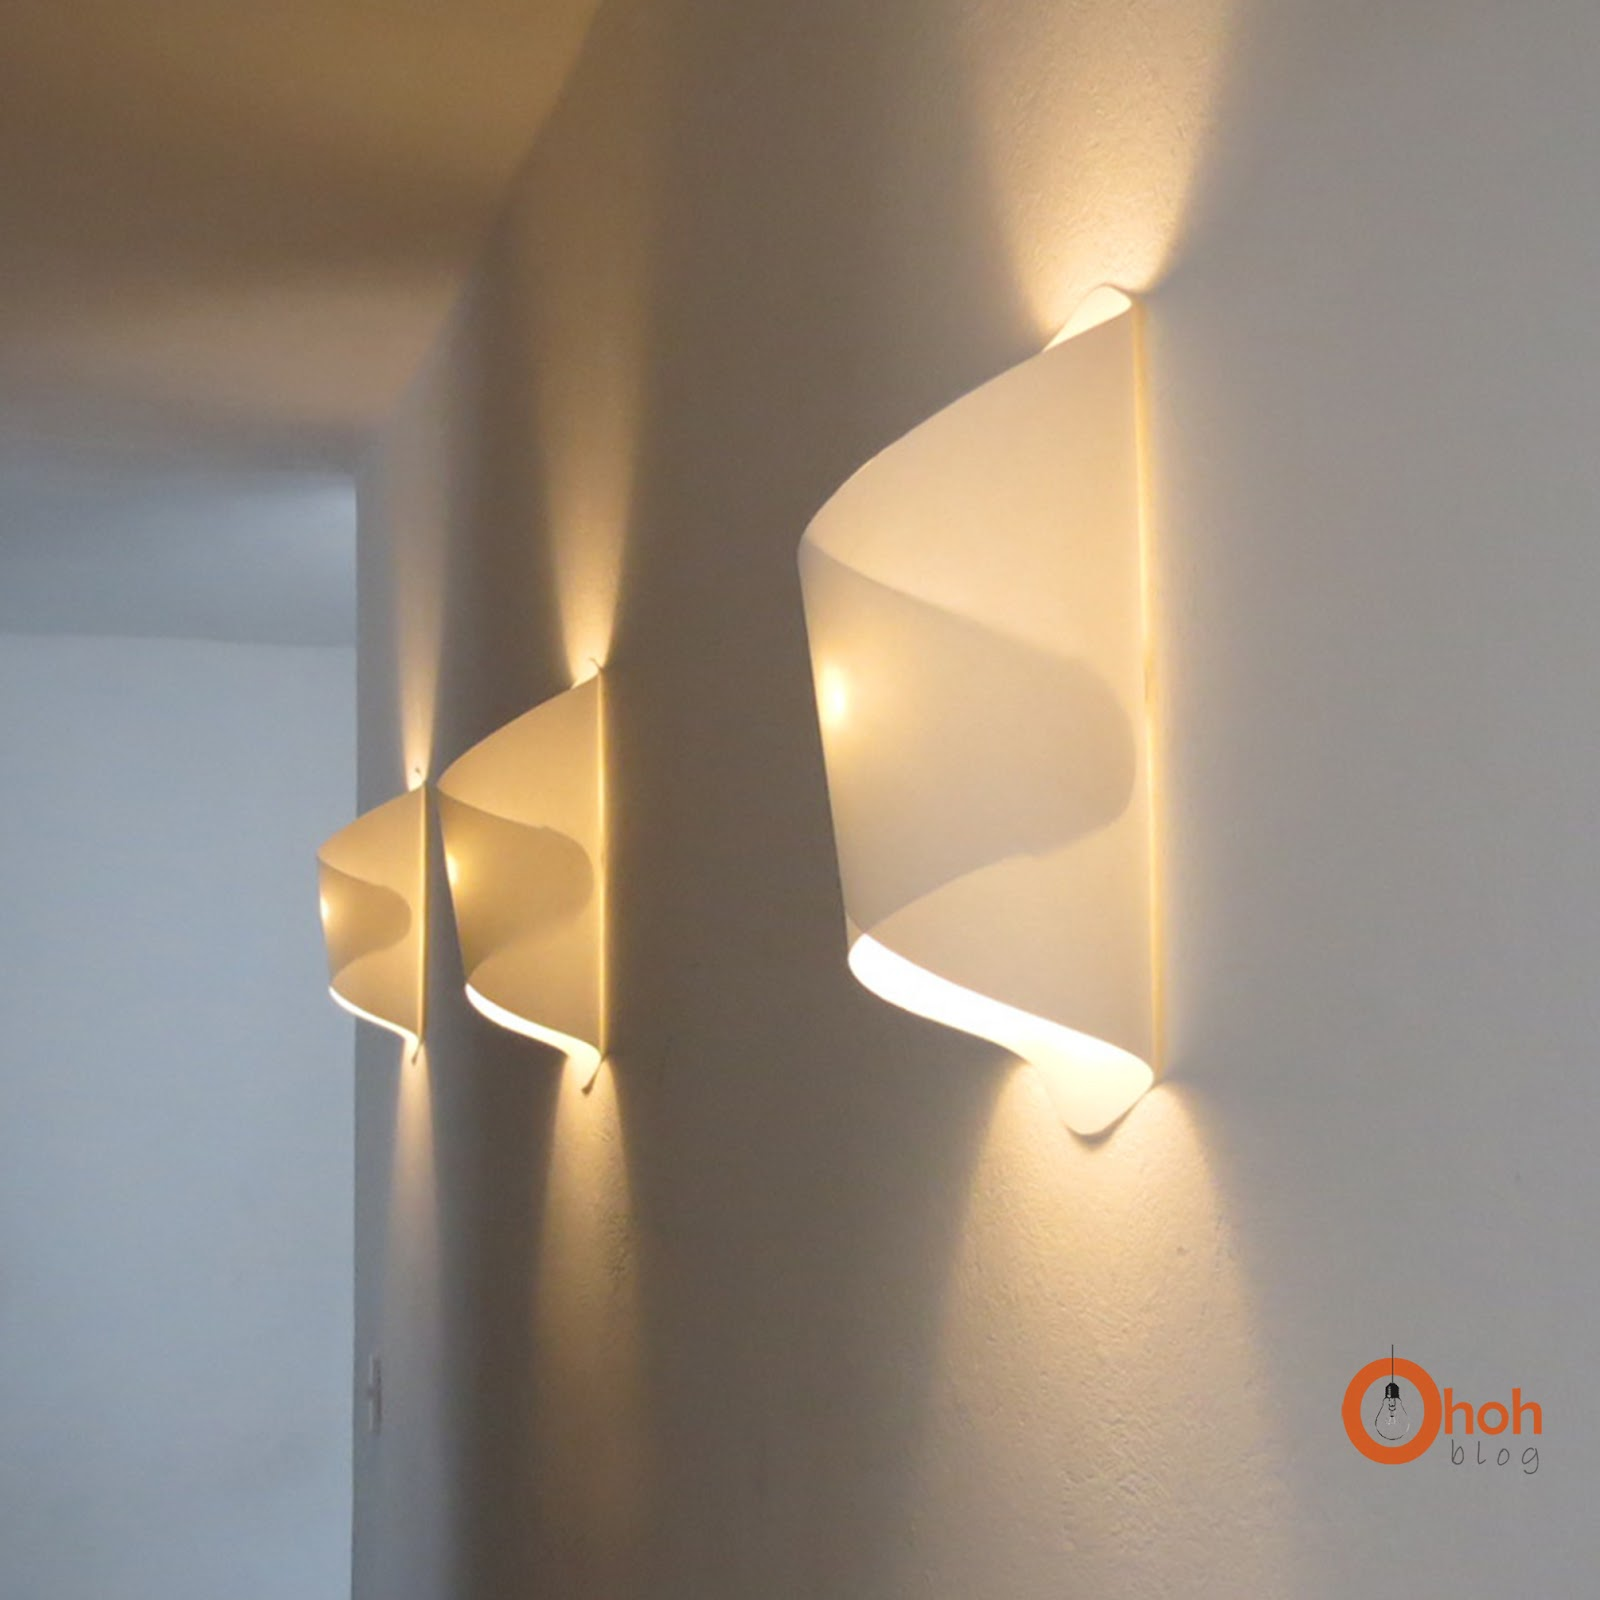 Wall Lamps : DIY paper lamp / Lampara de papel - Ohoh Blog